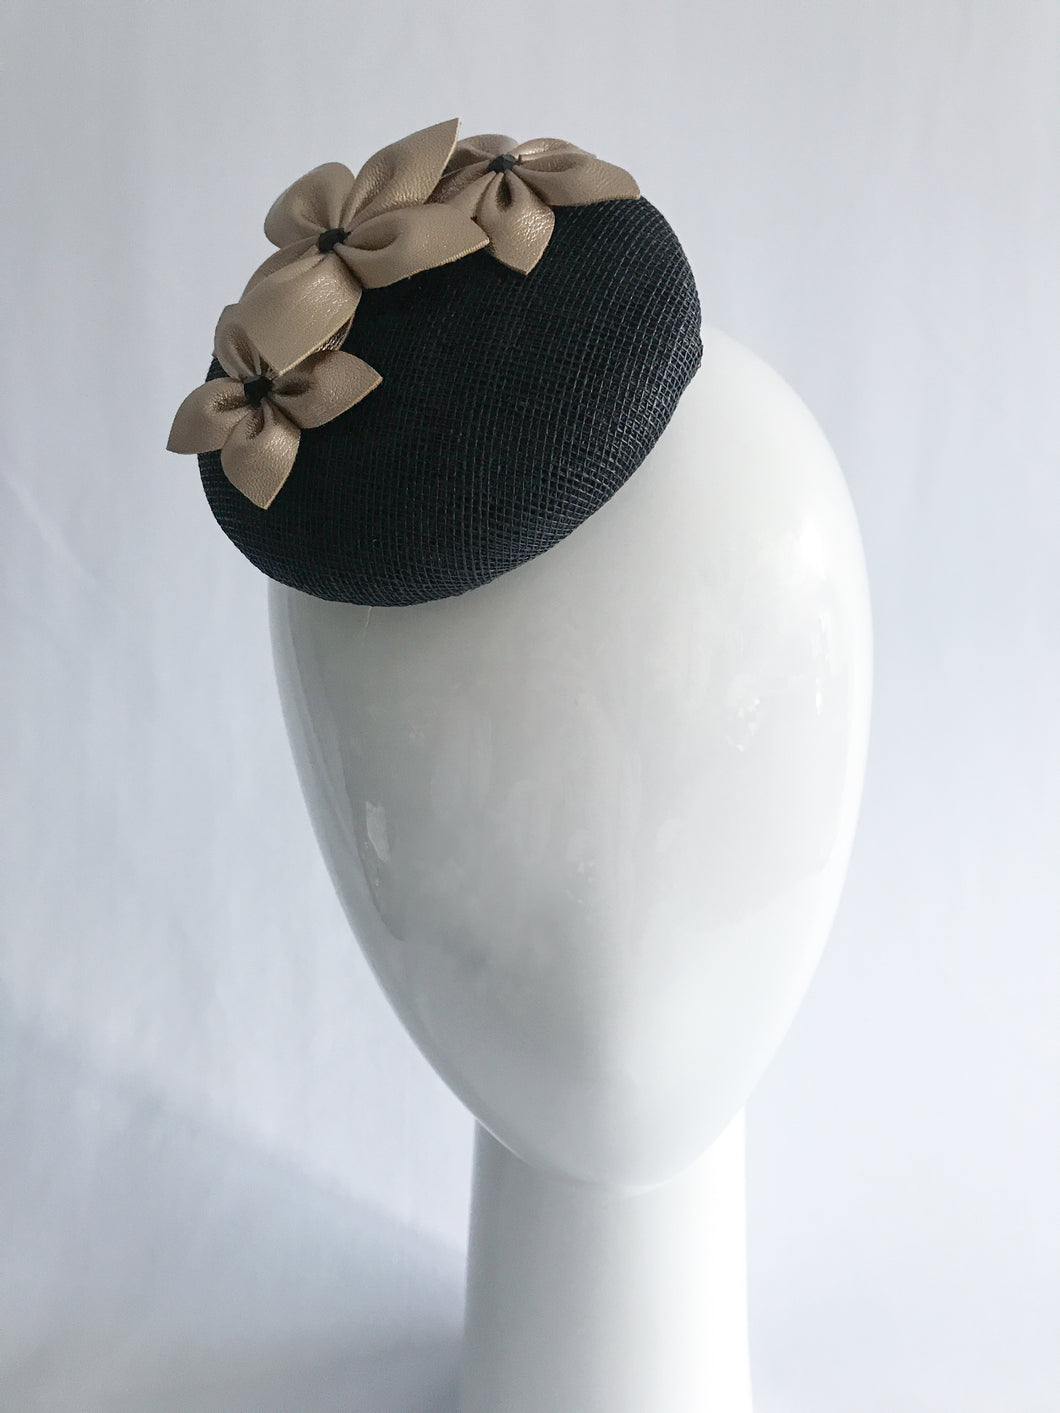 Small Black Sinamay Base with Gold Leather Flowers